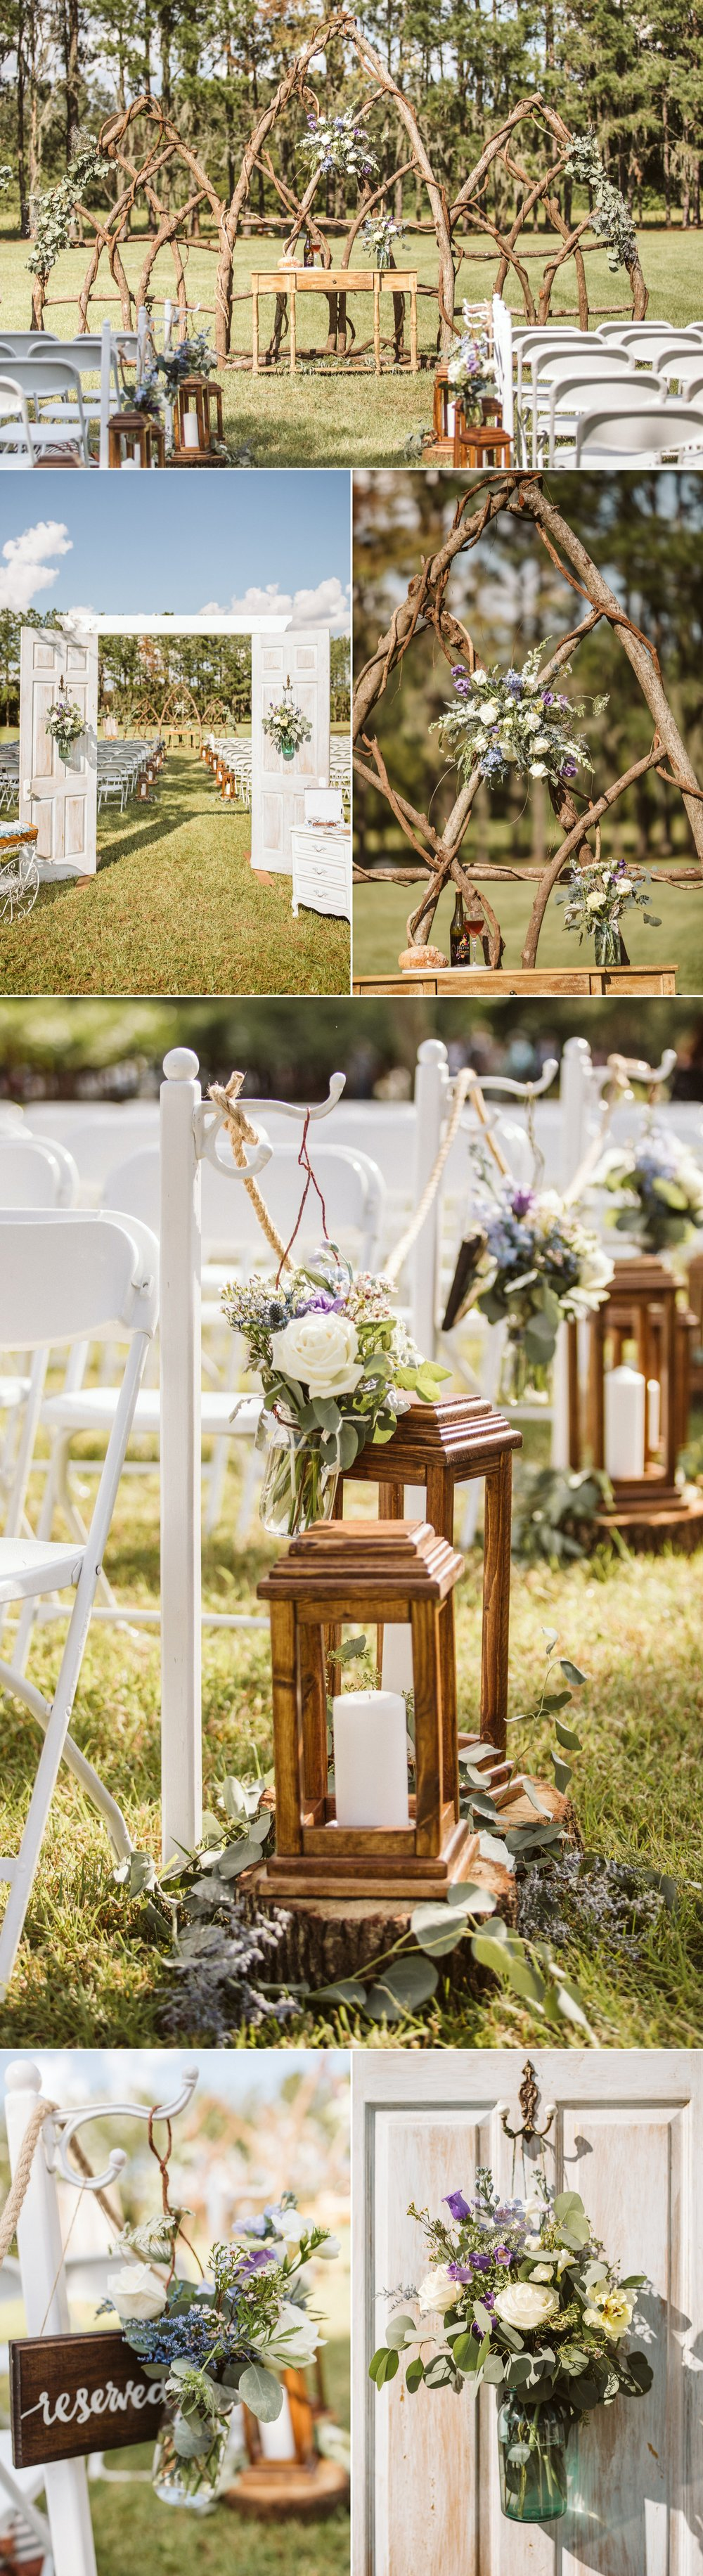 Romantic Floral Outdoor Field Chapel Wedding- Sarasota Florida- Courtney & Isaac13.jpg